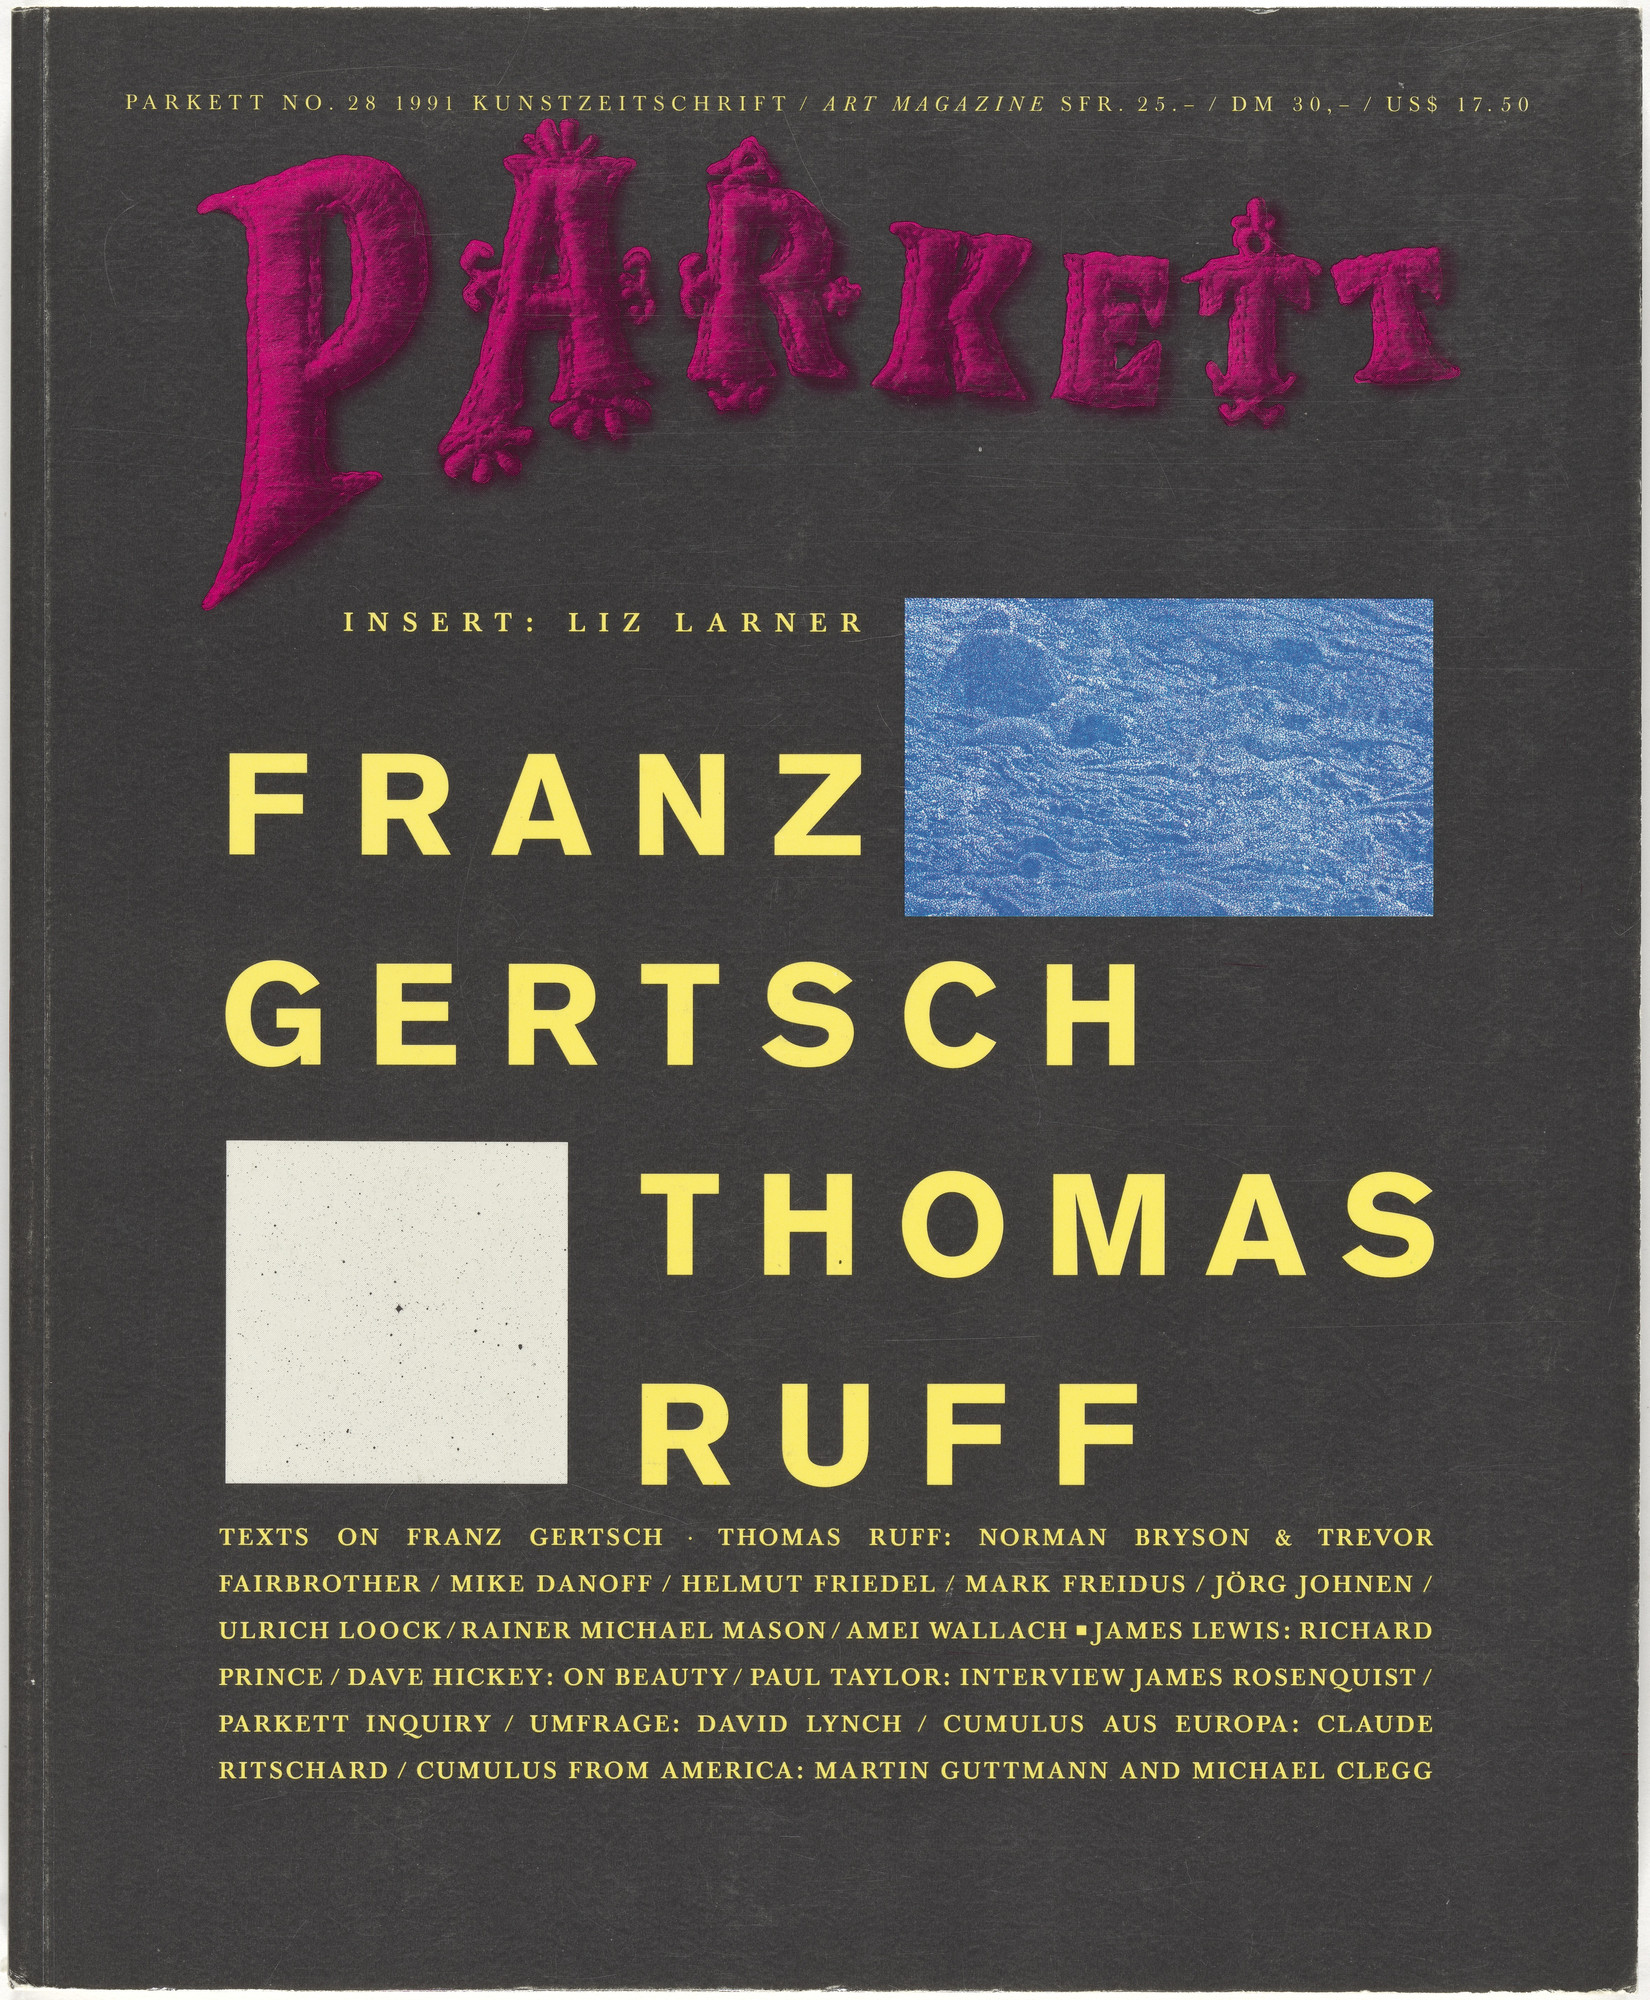 Various Artists, Franz Gertsch, Thomas Ruff, Liz Larner, Niele Toroni. Parkett no. 28. 1991